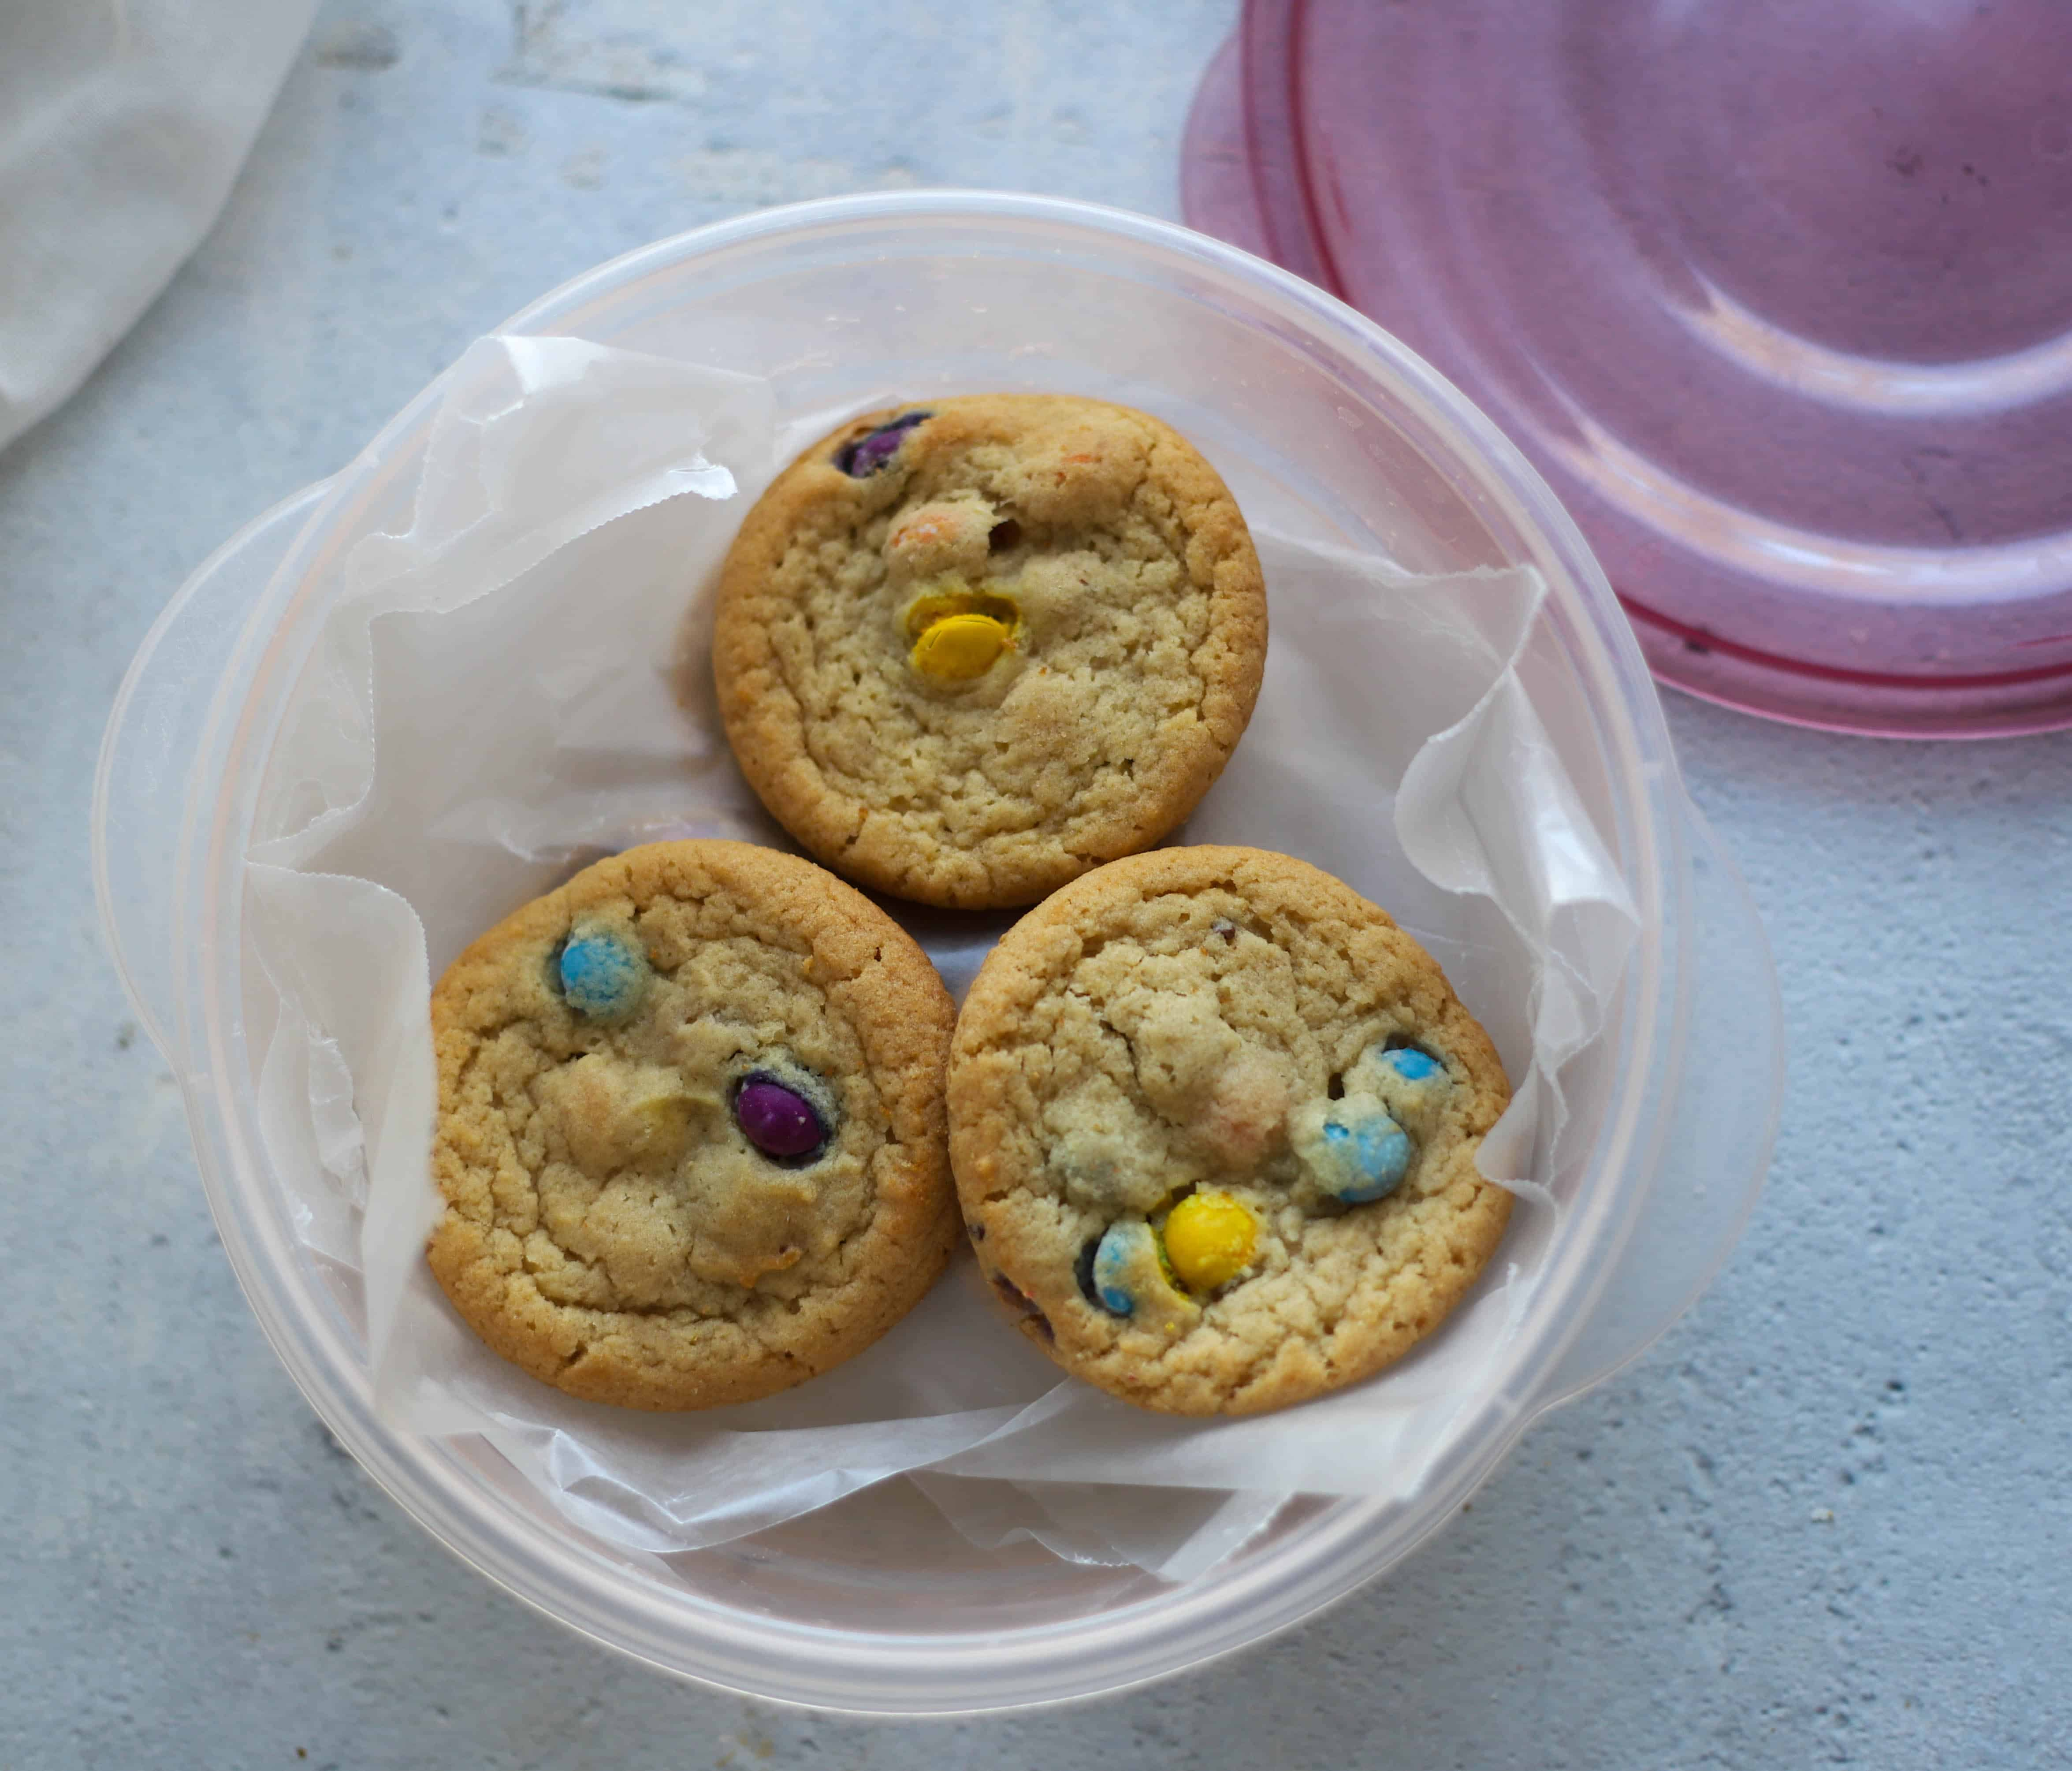 cookies layered with wax paper and stored in a plastic container